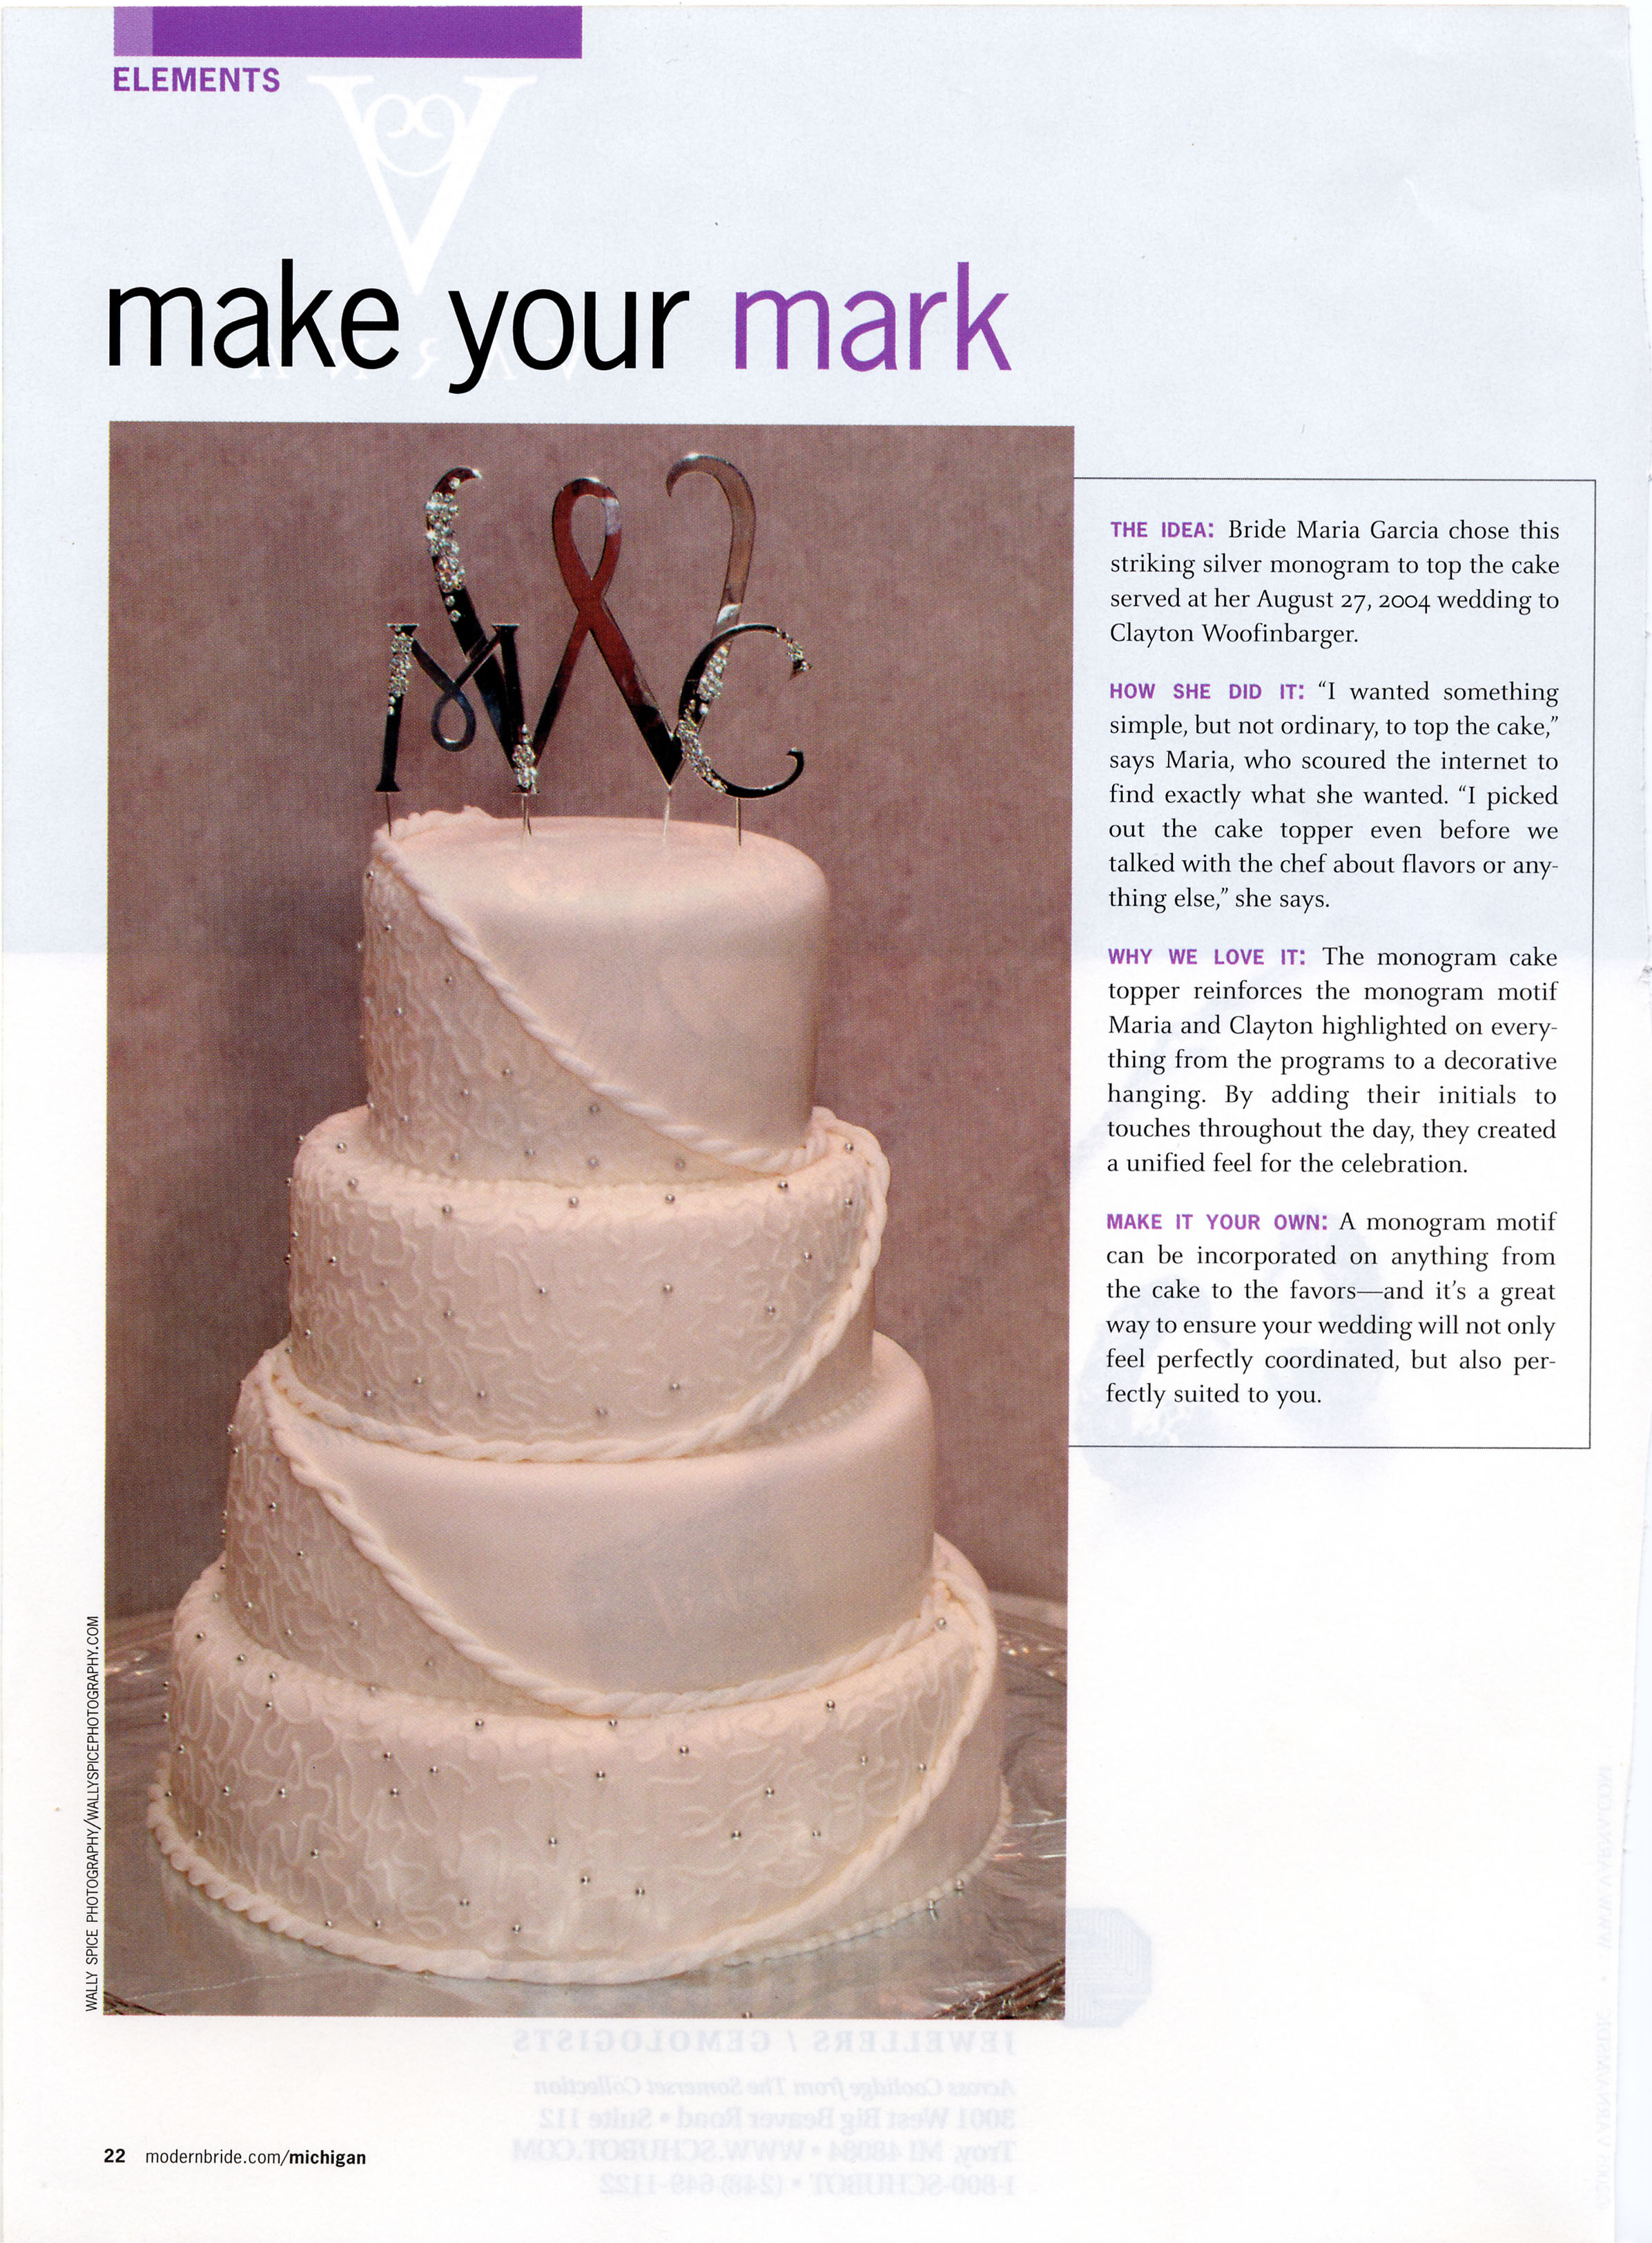 make your mark page.jpg